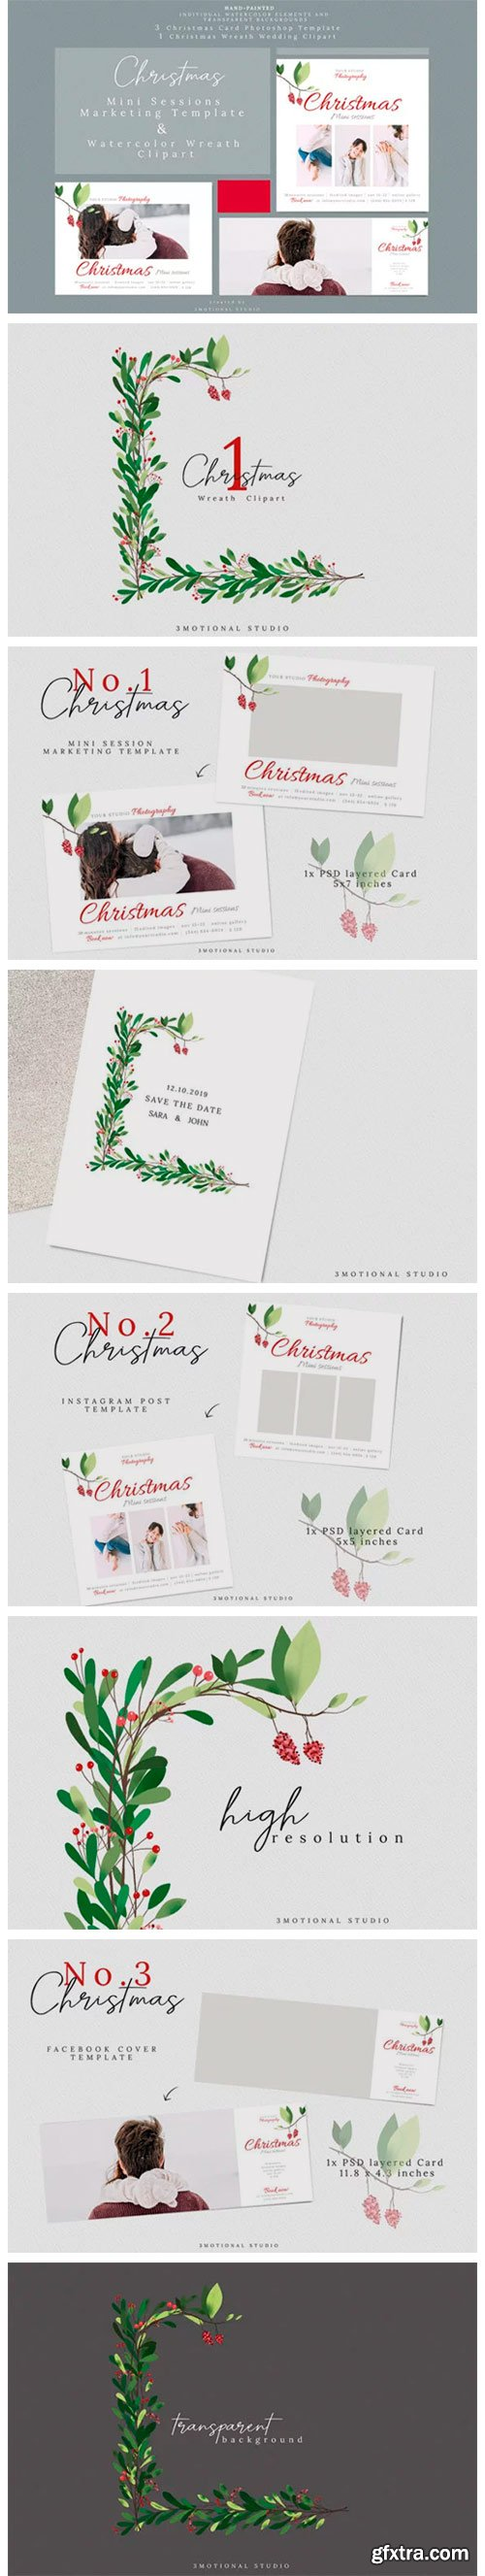 Holiday Mini Sessions Marketing Template 2020095